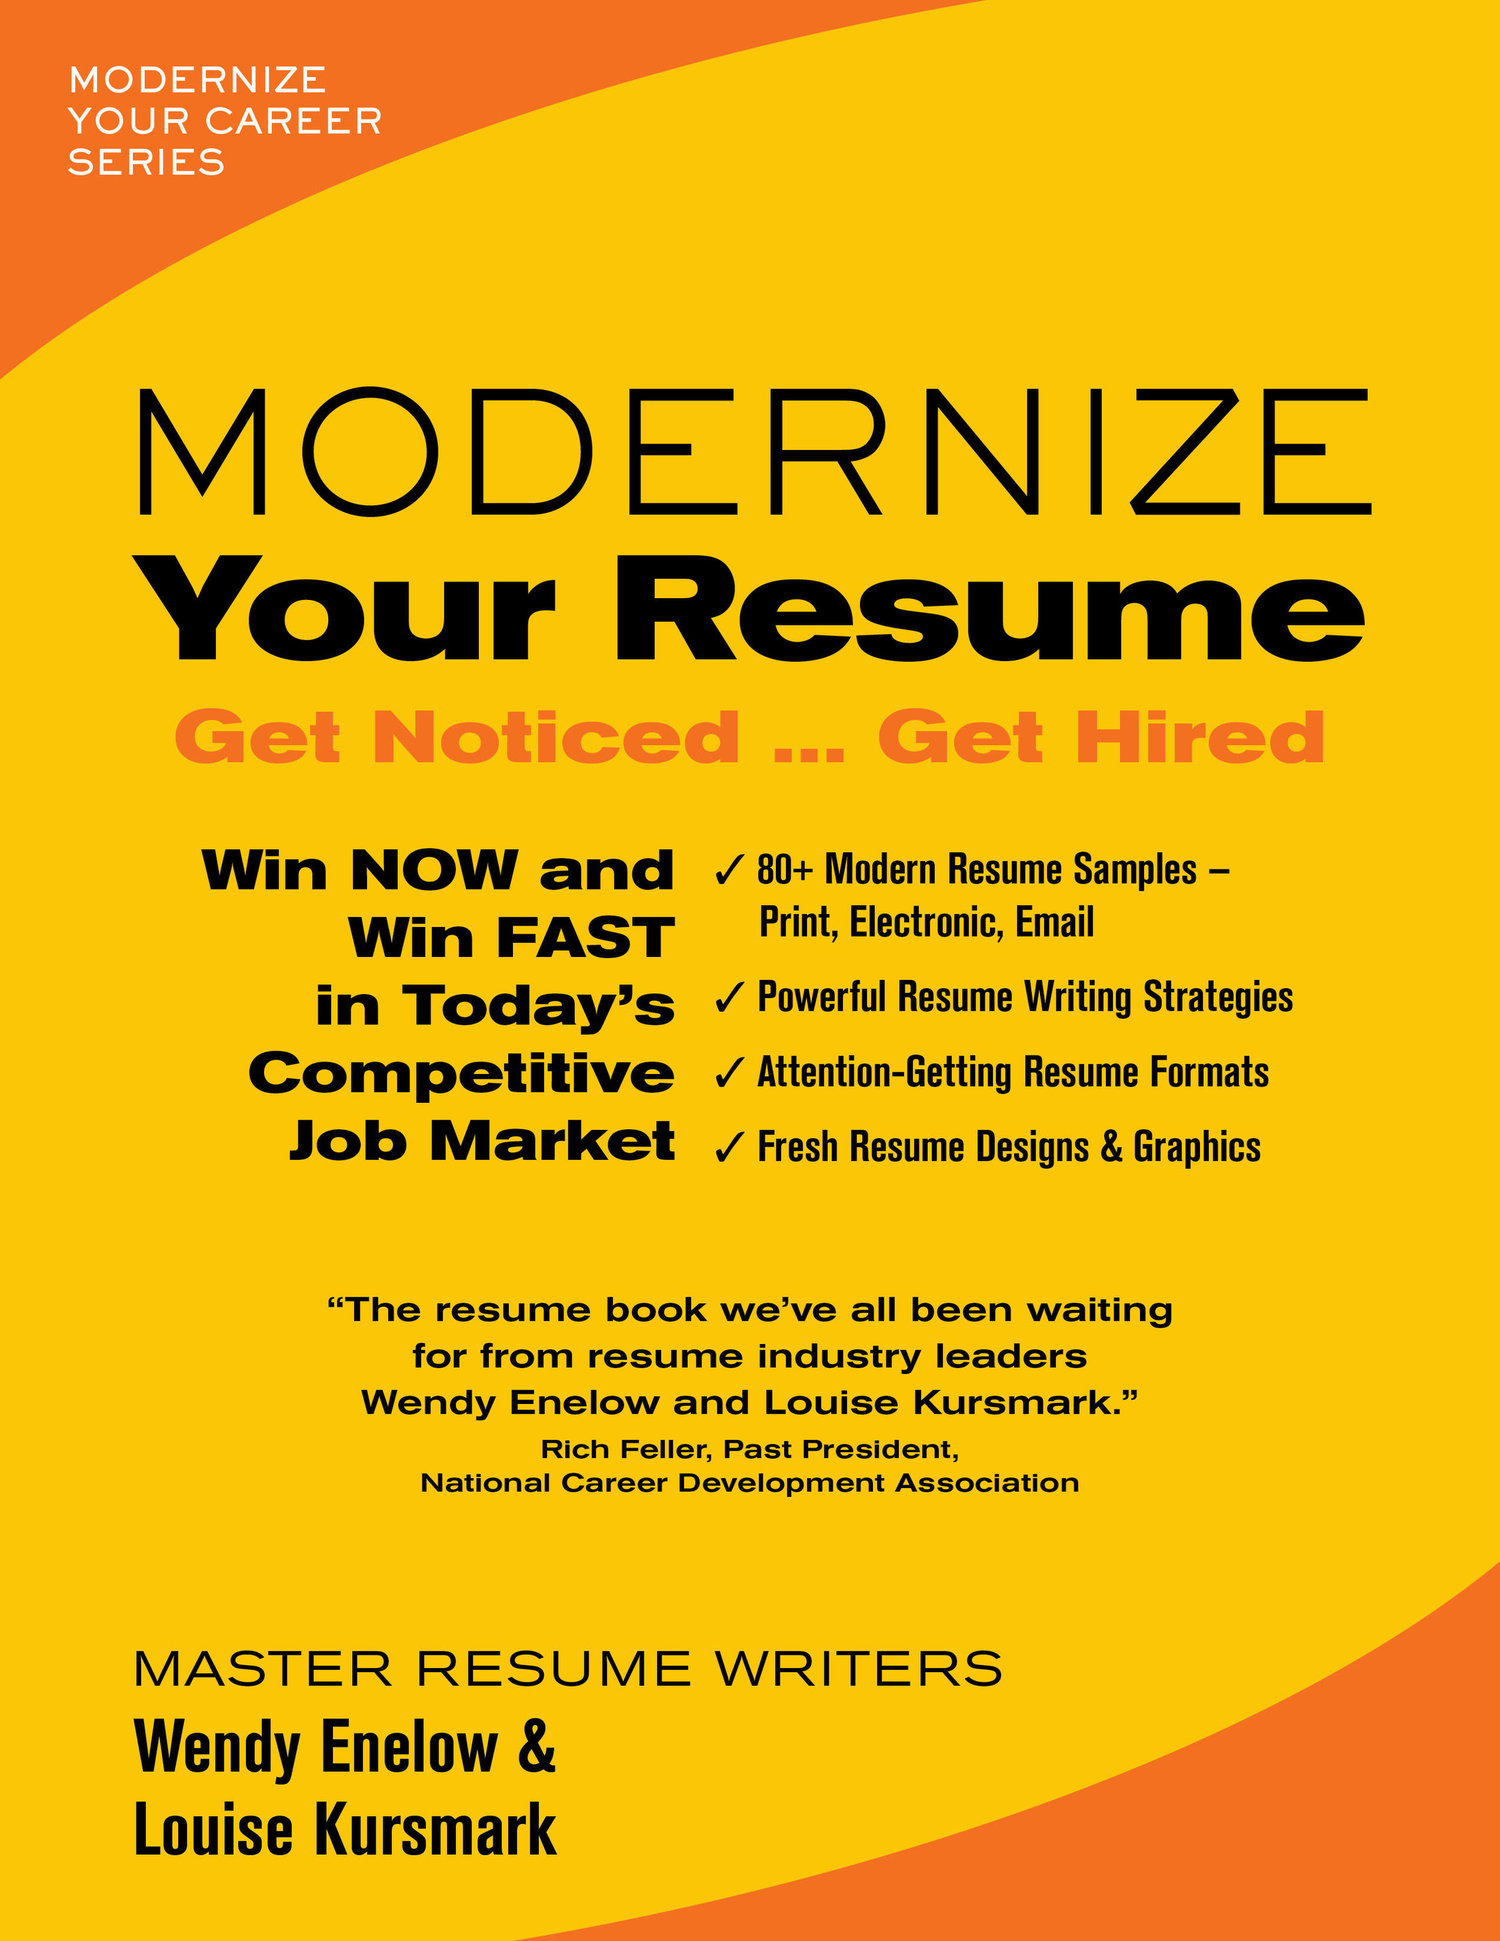 Modernize Your Resume Get Noticed ... Get Hired — BryceLegal.com